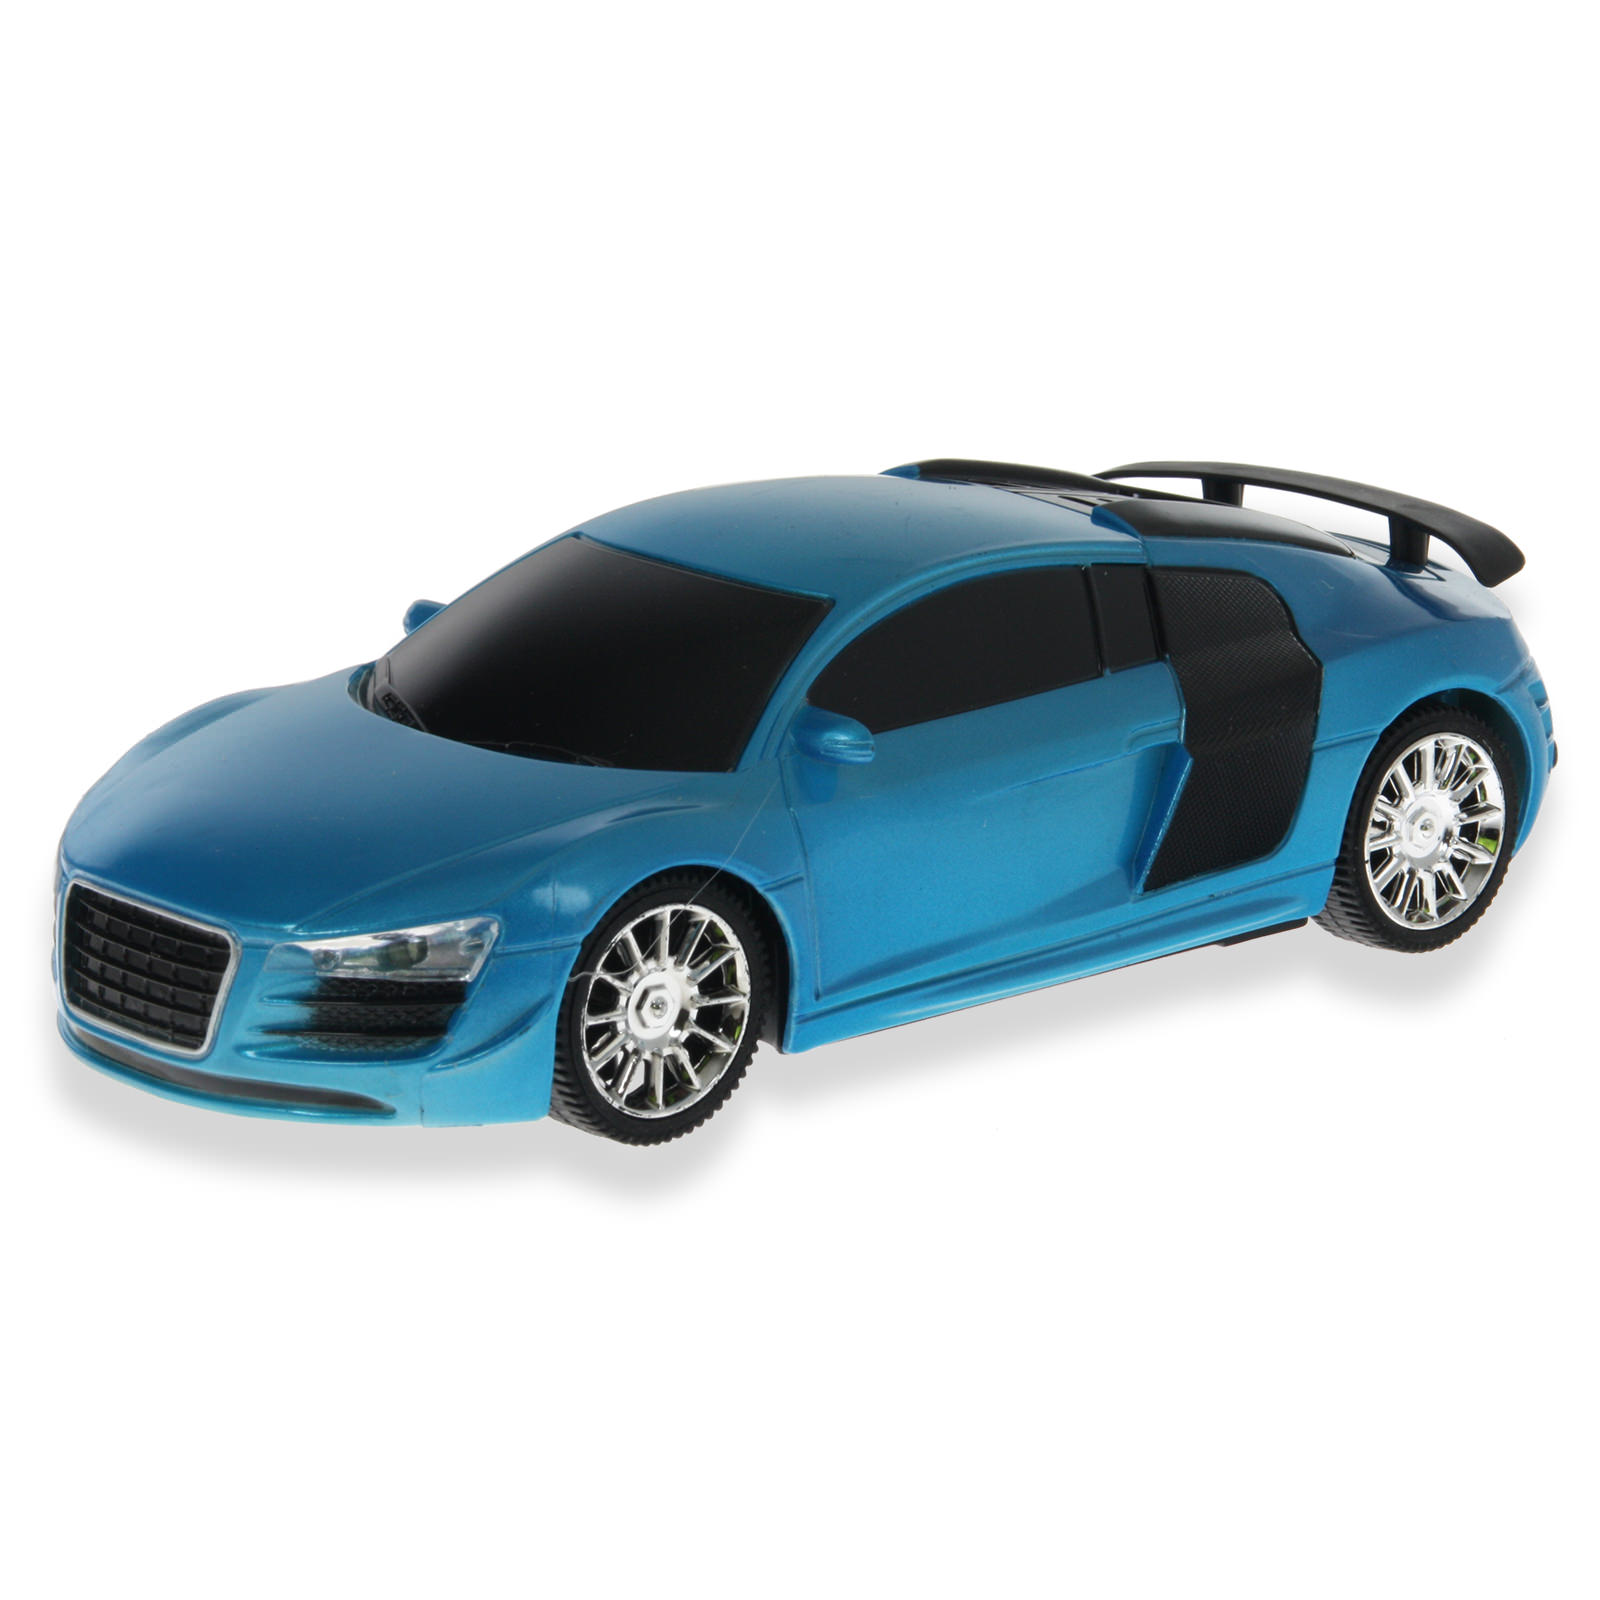 fast car lf10 blue audi r8 rc car at hobby warehouse. Black Bedroom Furniture Sets. Home Design Ideas